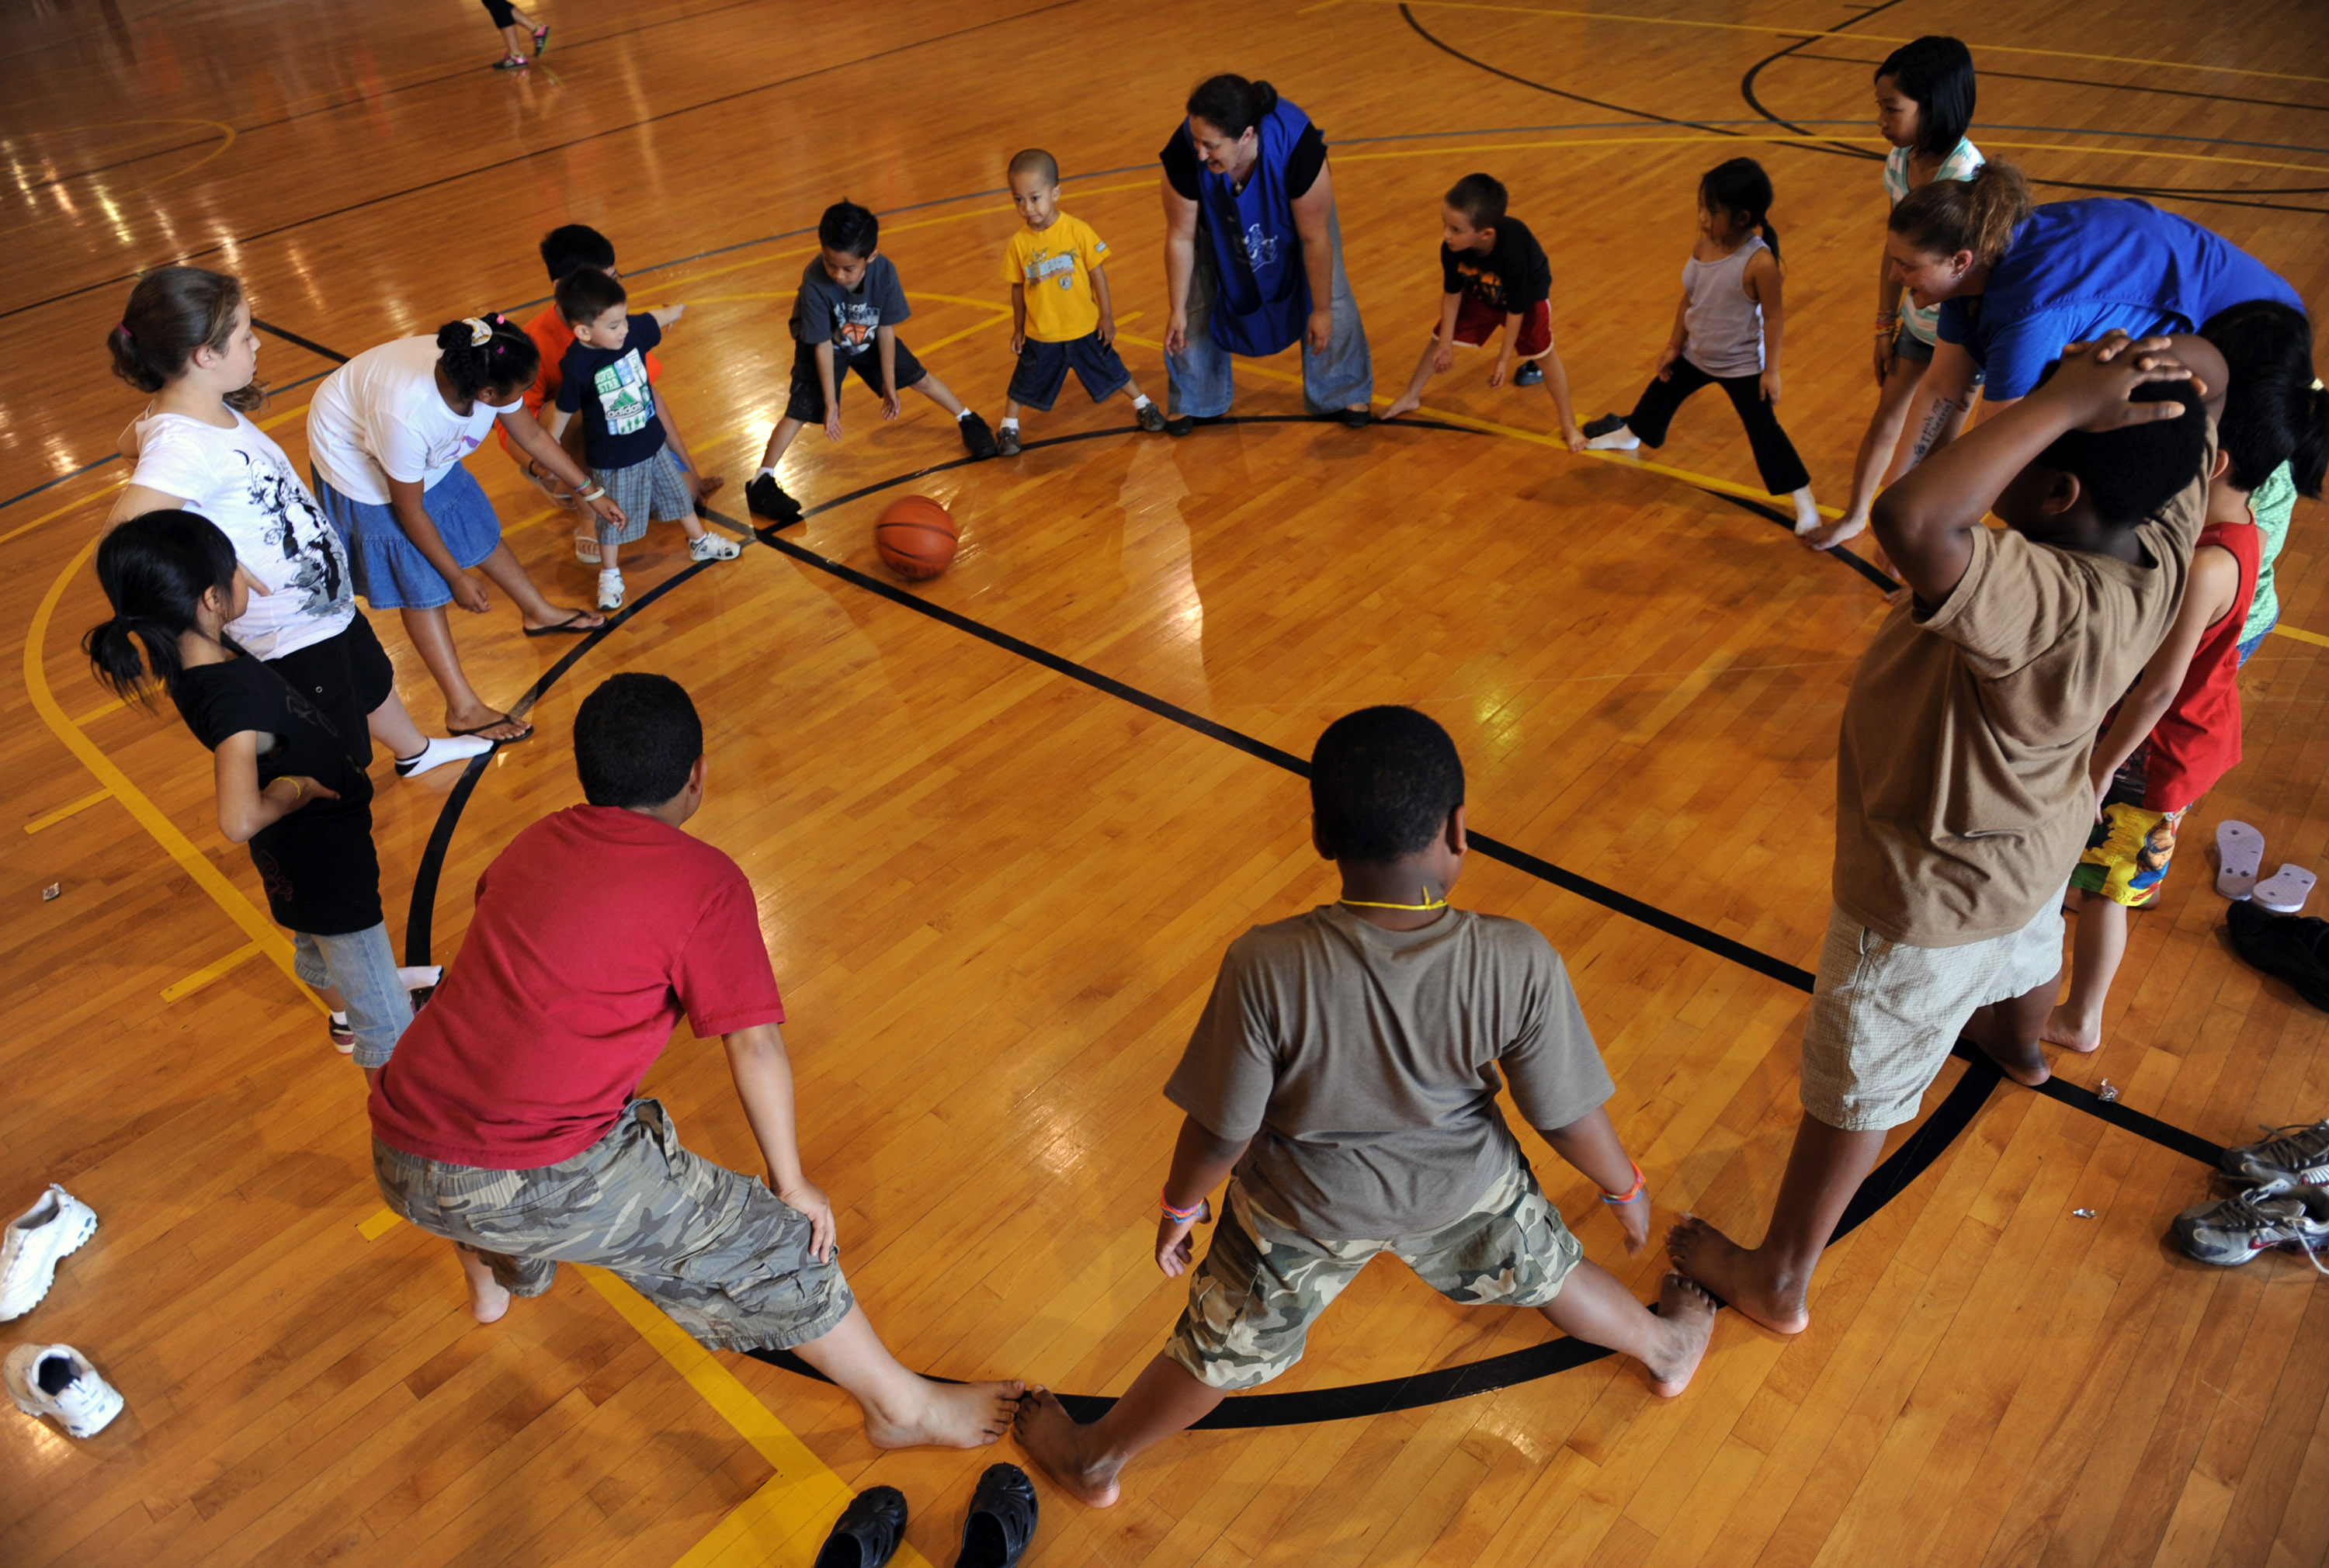 Gym Activities For Teens